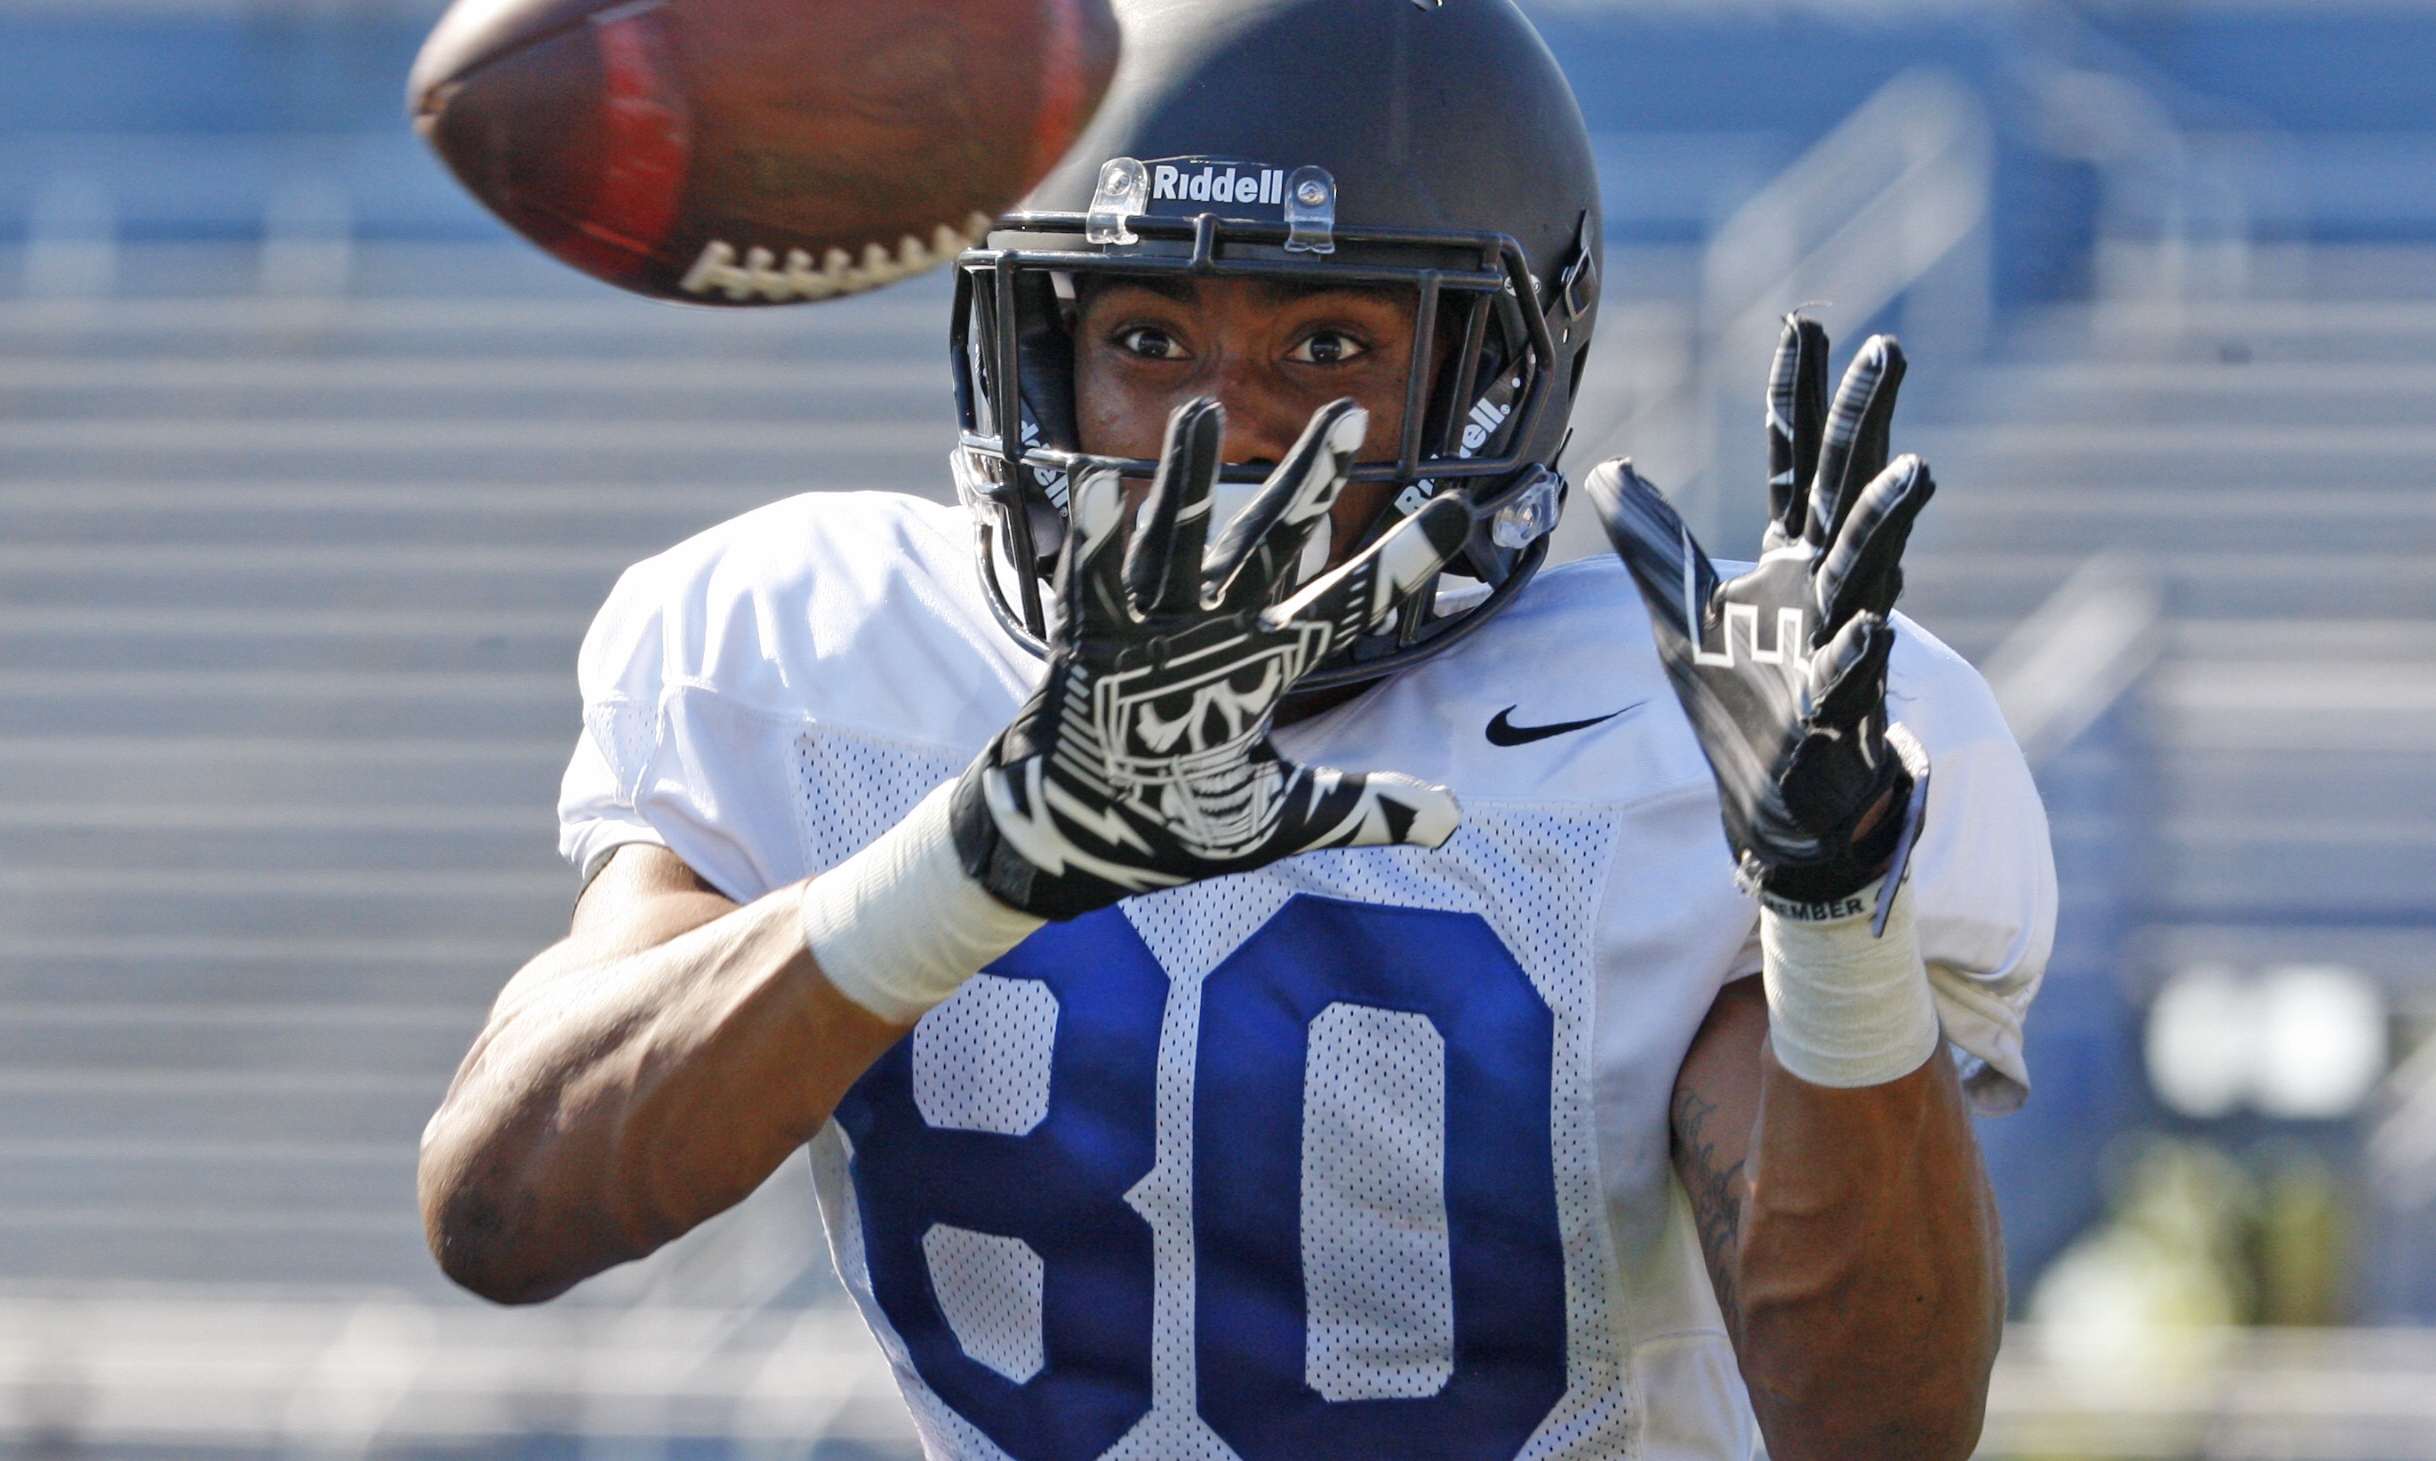 Senior receiver Malcolm Robinson, catching a pass at practice on Tuesday, chose UB over Bowling Green, Toledo and Ball State when recruited out of high school. (Harry Scull Jr./Buffalo News)